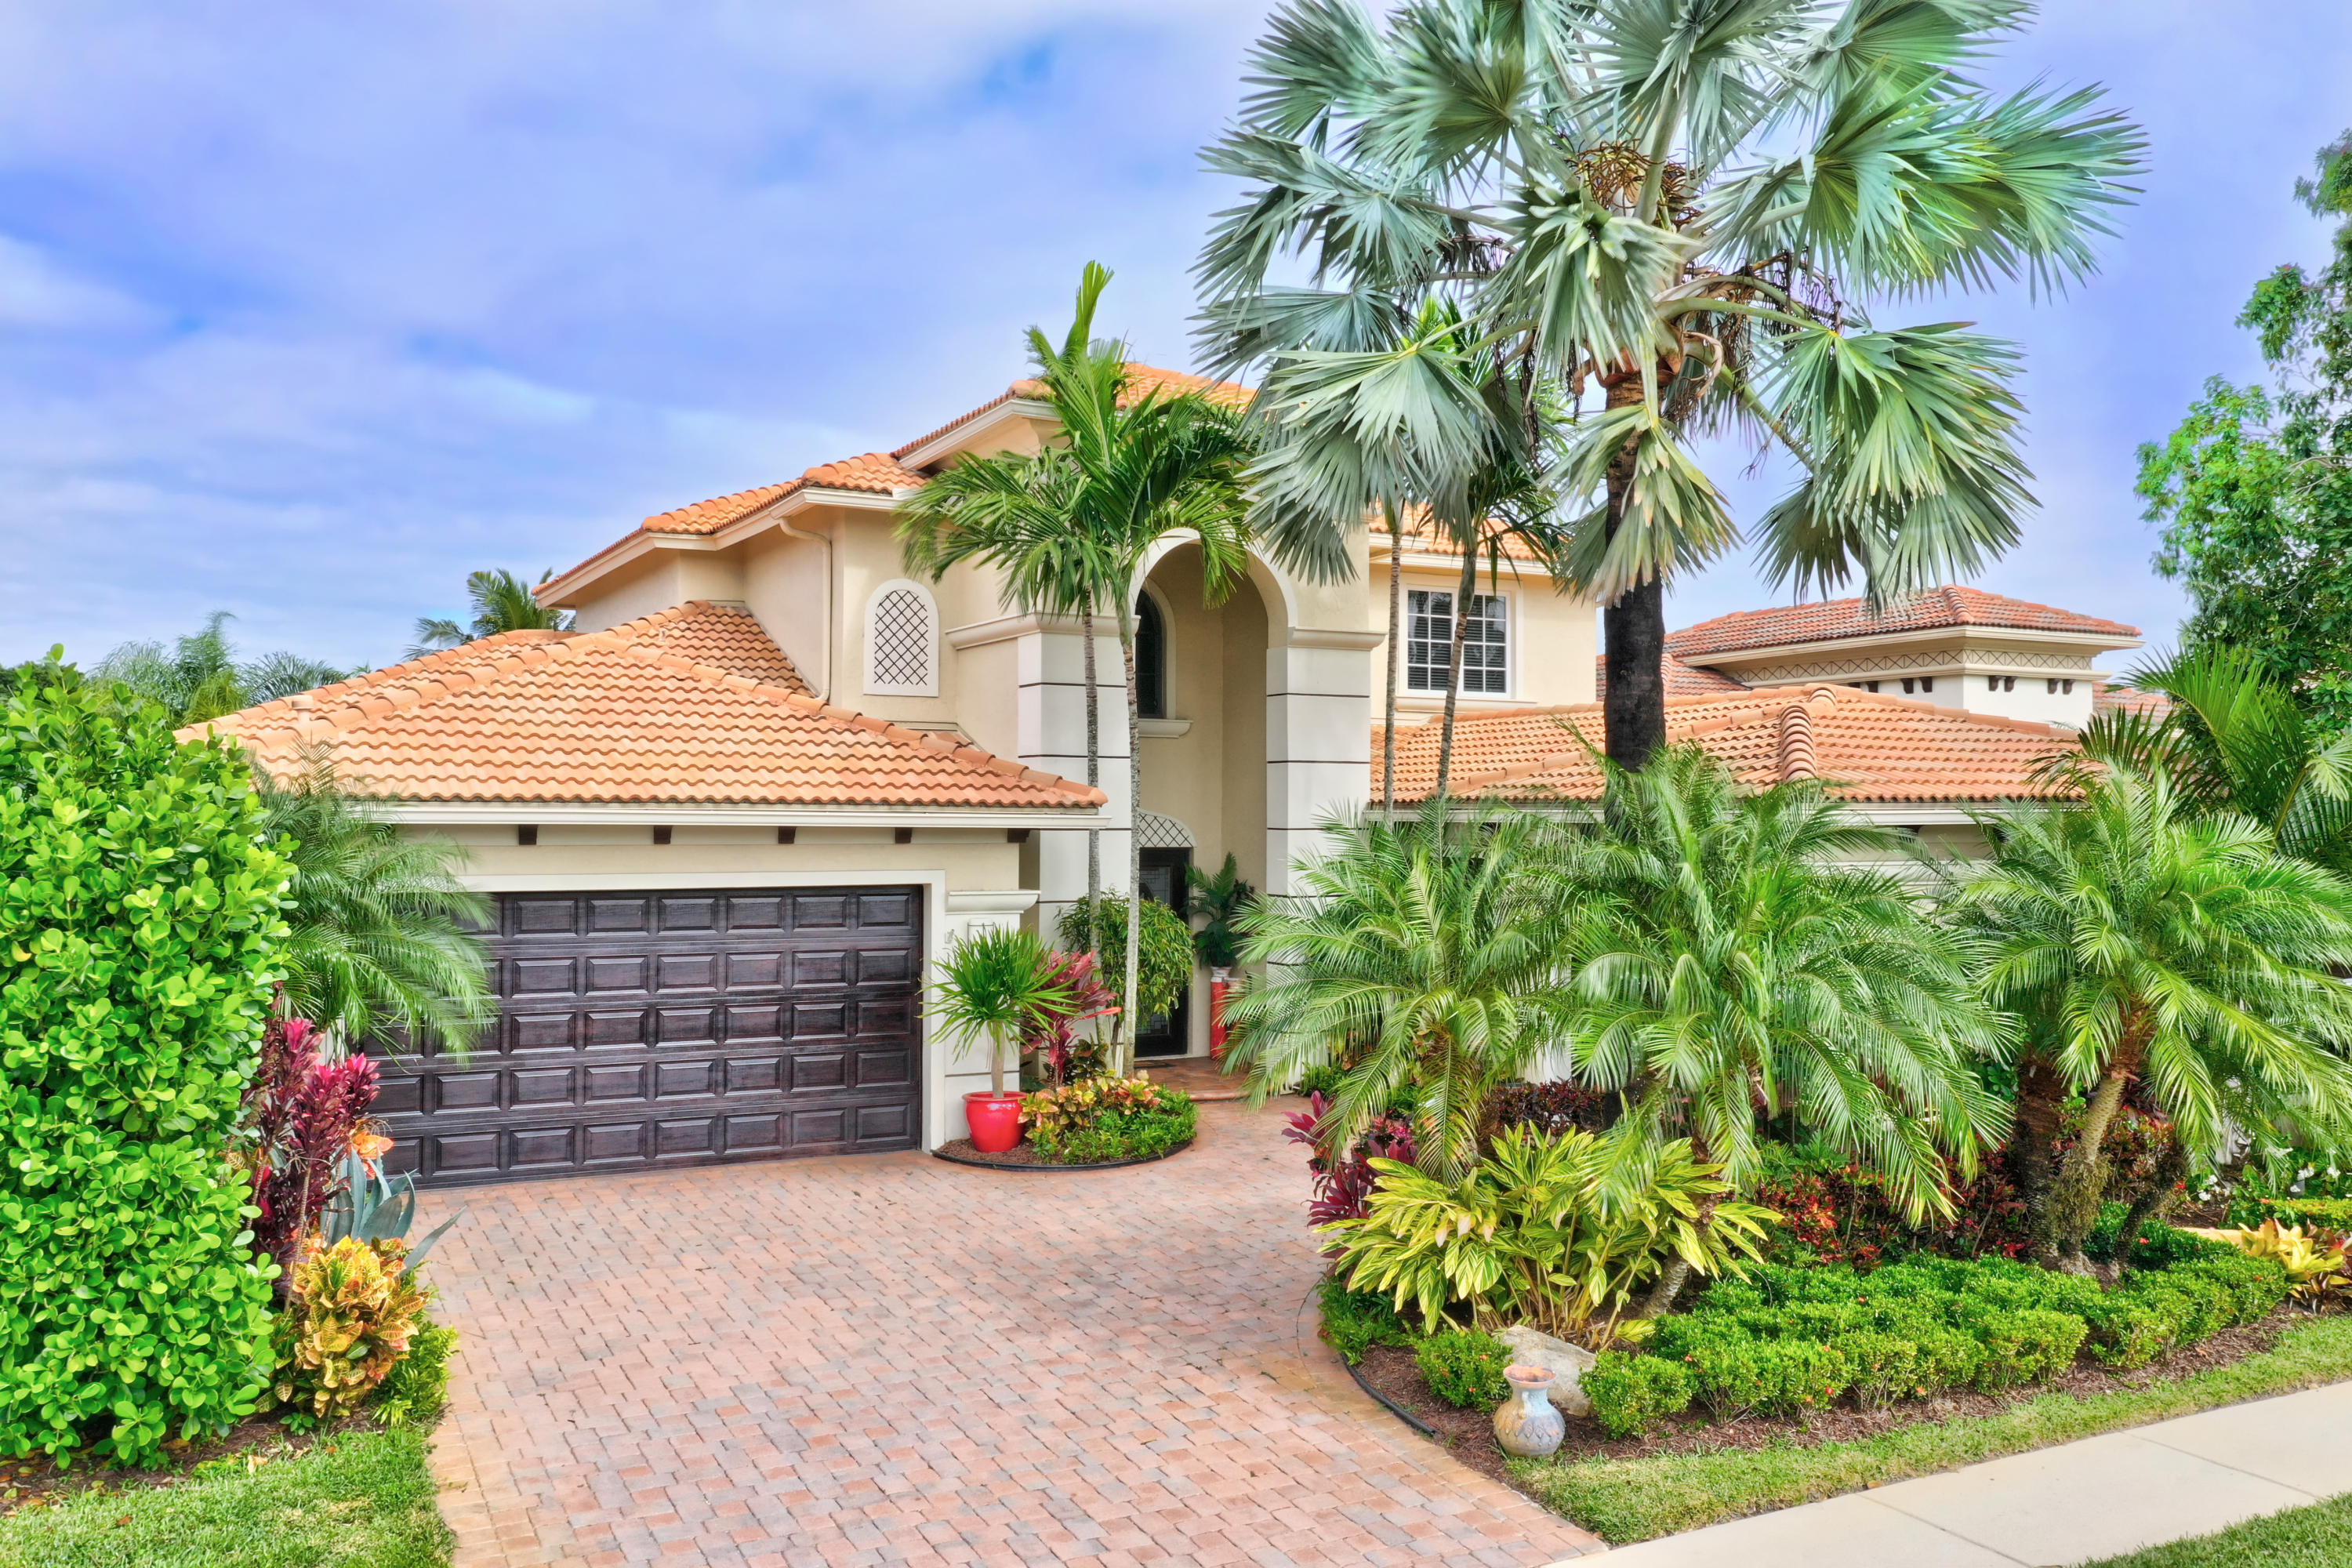 10687 Hollow Bay Terrace, West Palm Beach, Florida 33412, 4 Bedrooms Bedrooms, ,4.2 BathroomsBathrooms,A,Single family,Hollow Bay,RX-10594601